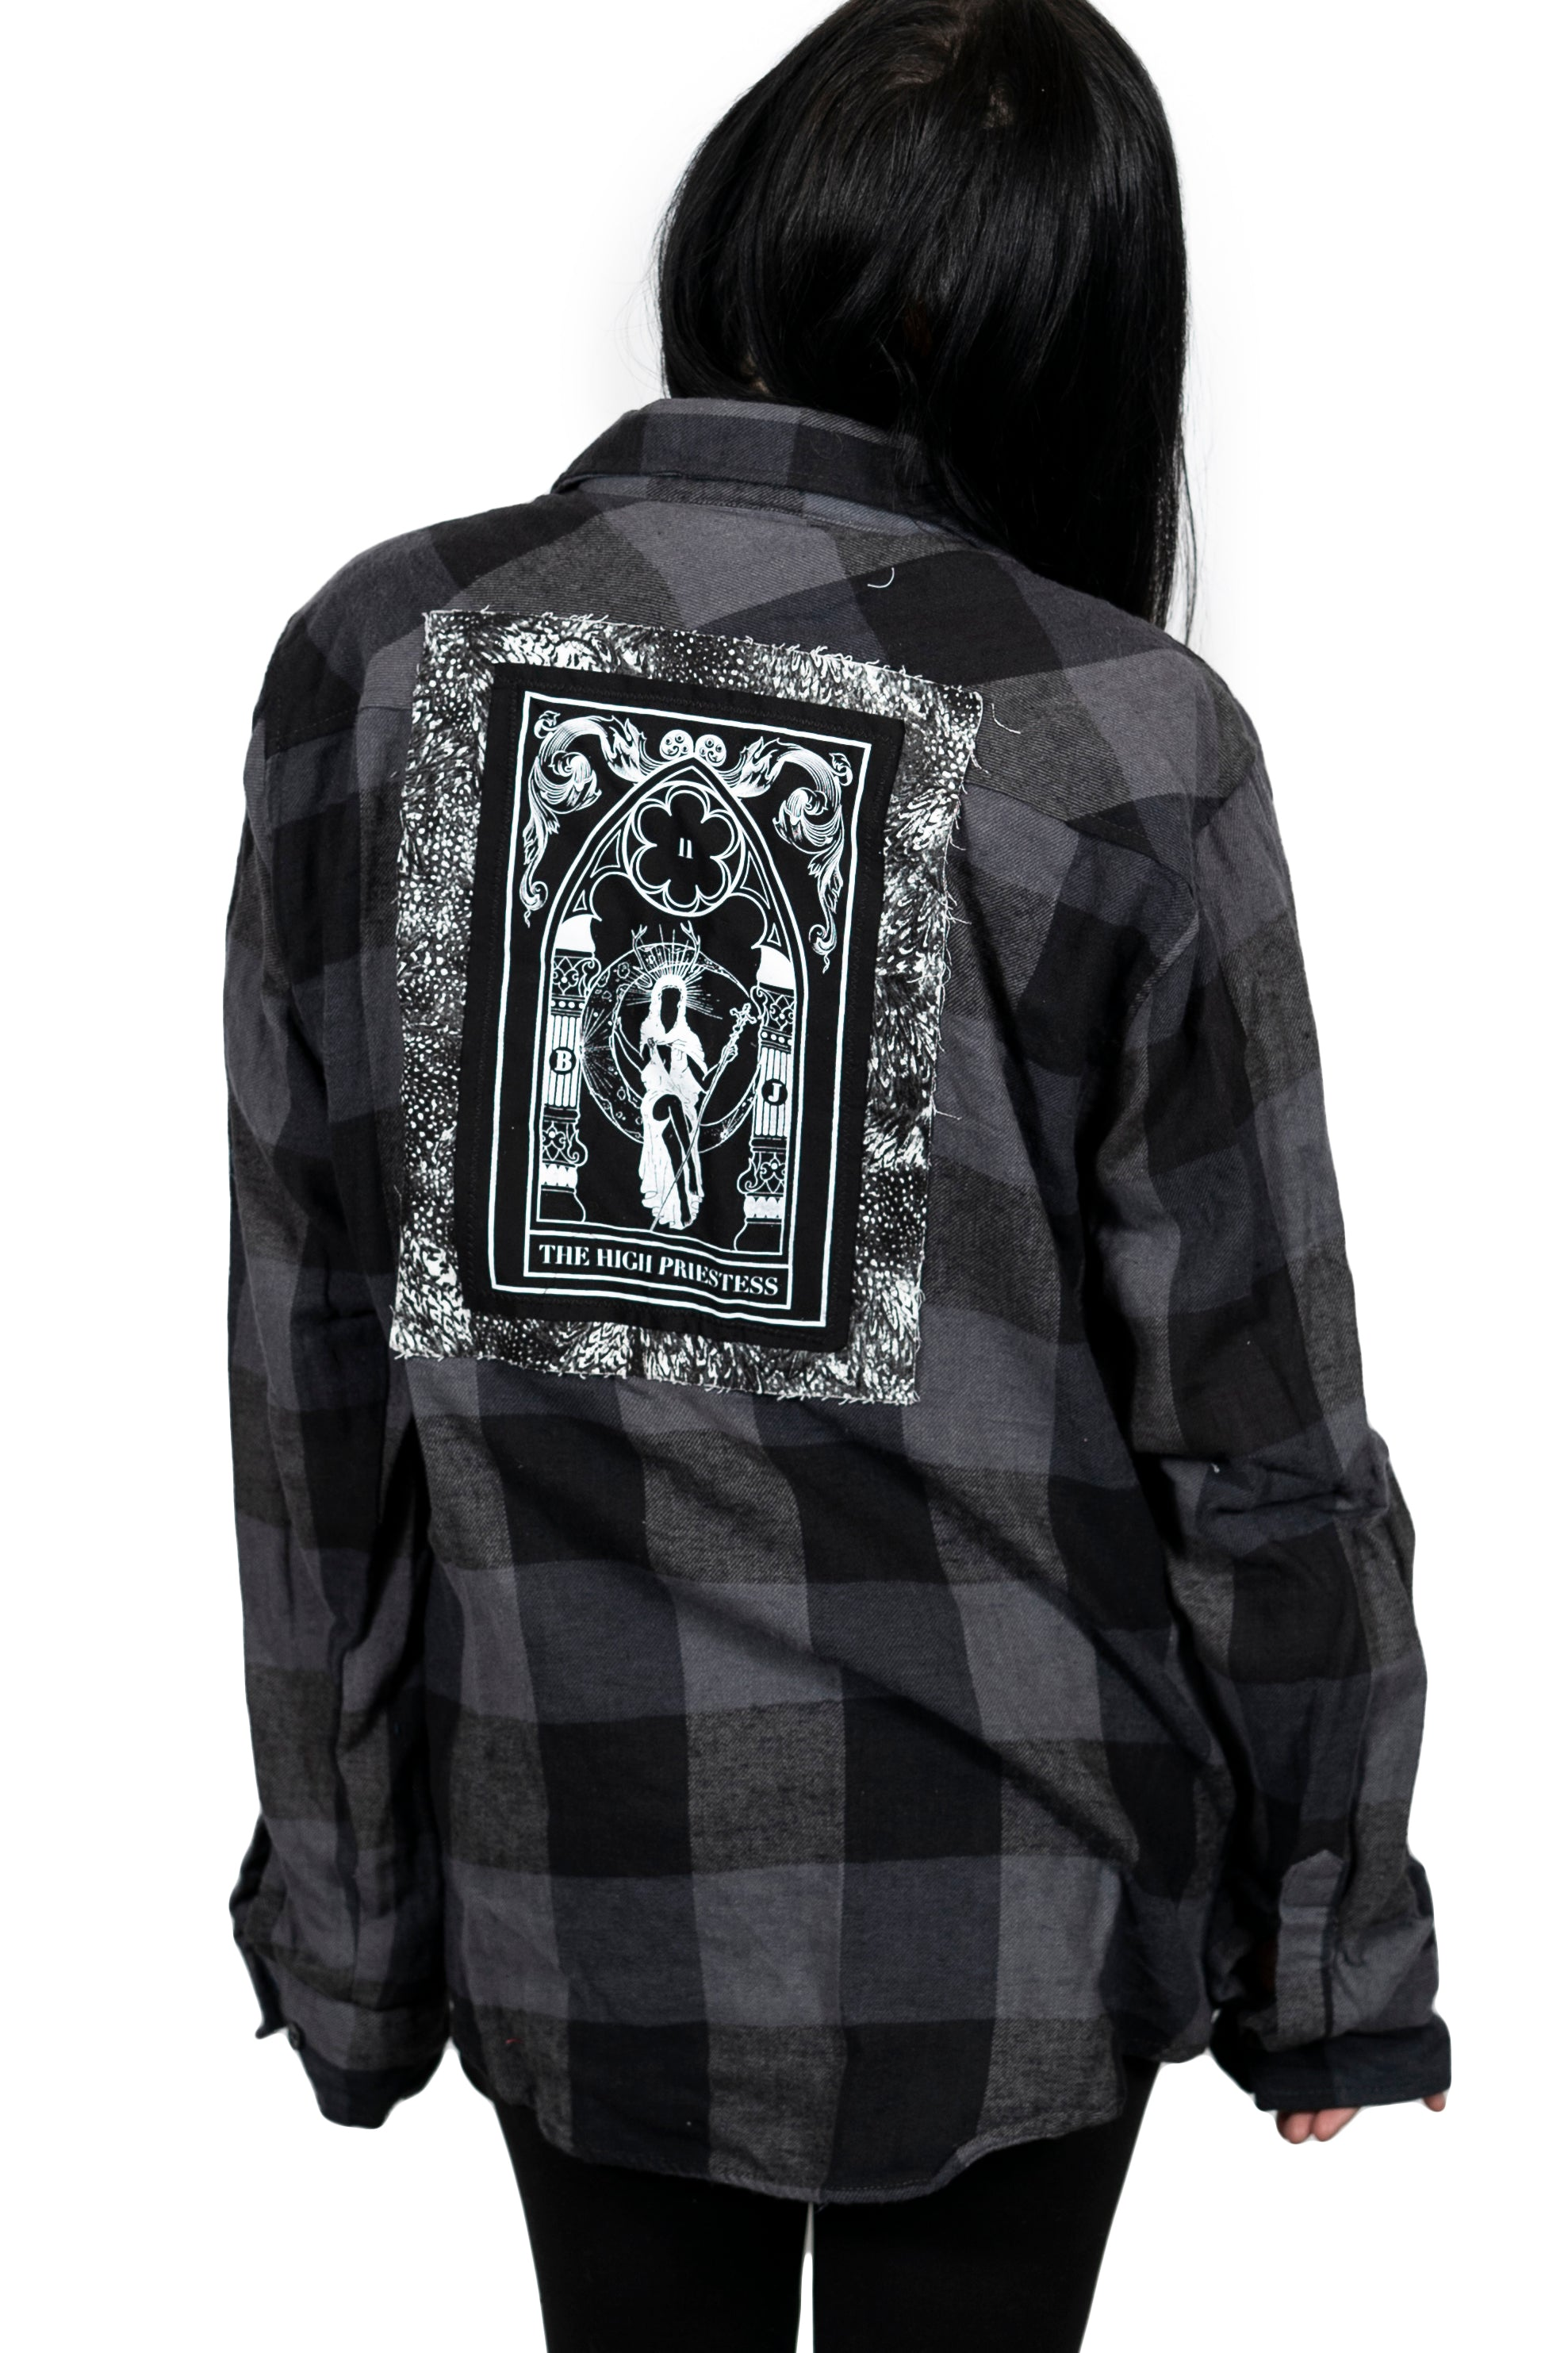 High Priestess Stone Flannel